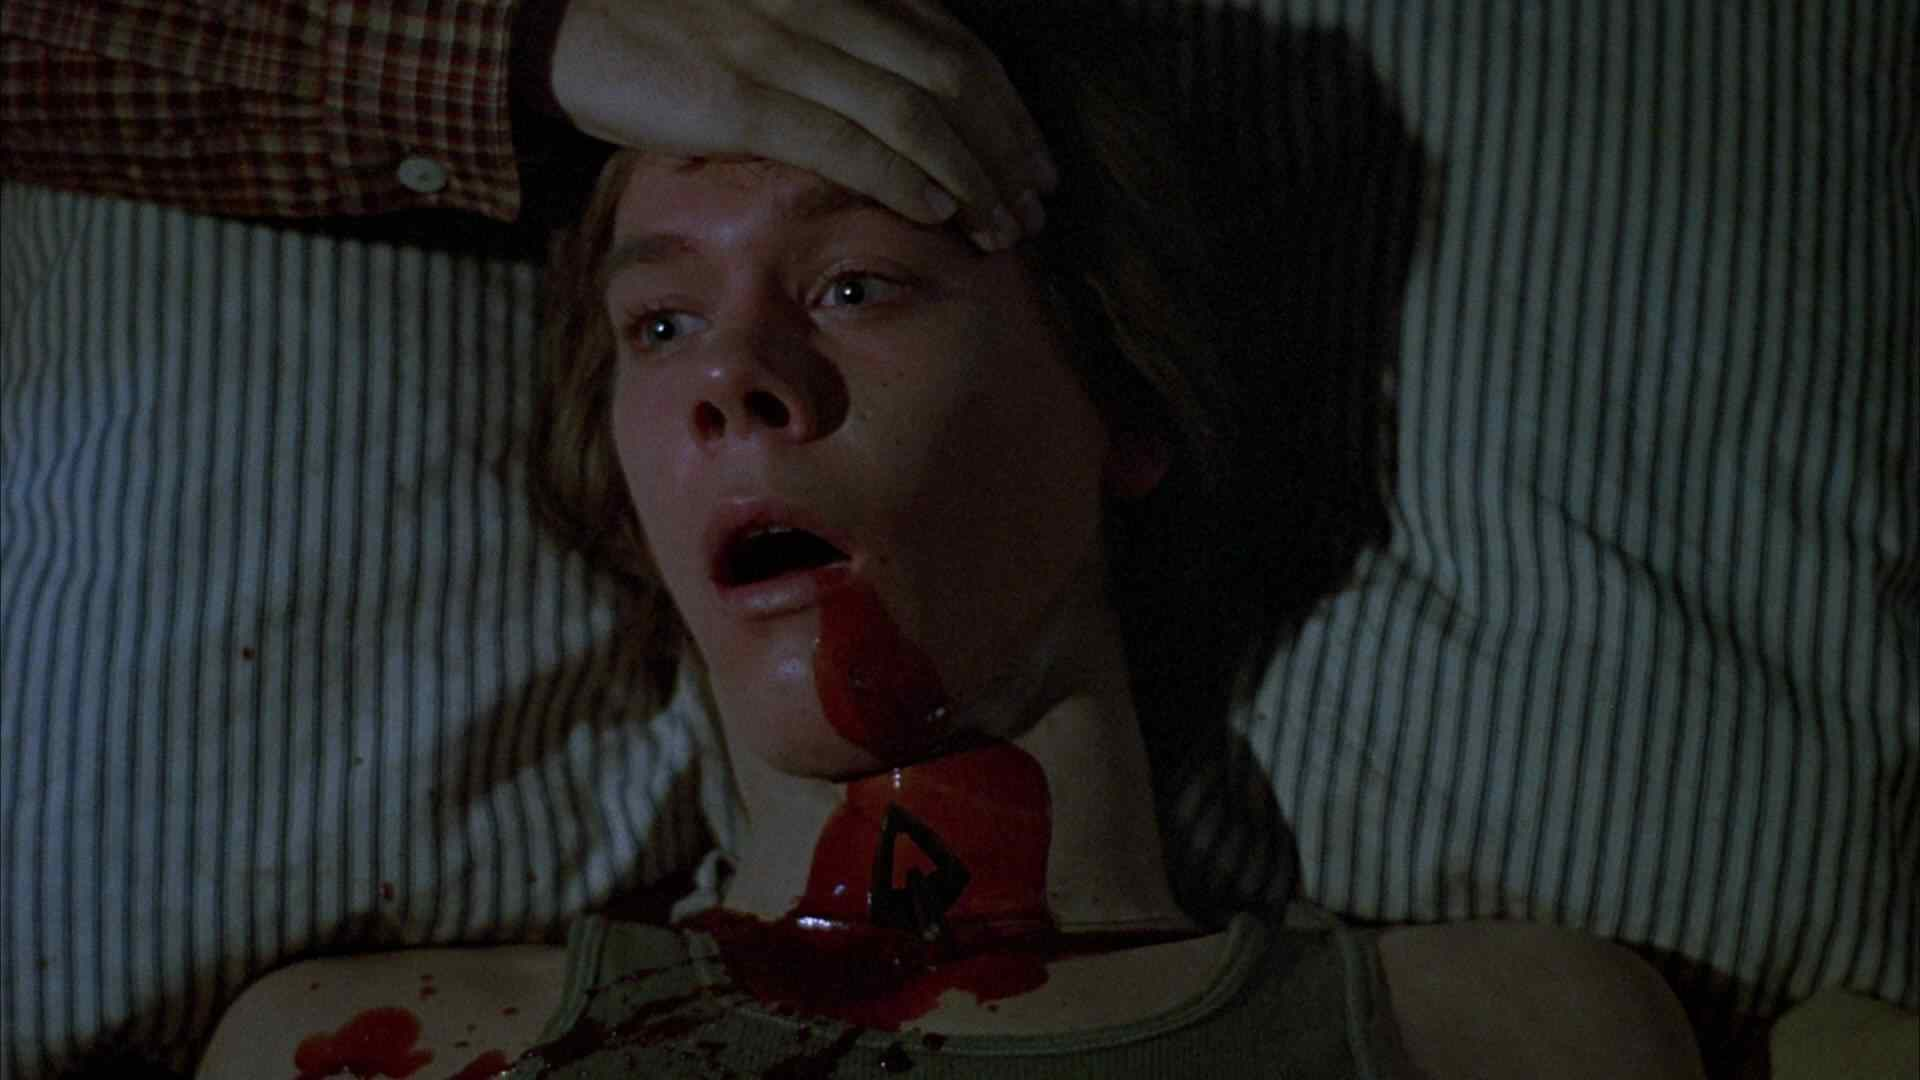 Kevin Bacon as Jack in Friday the 13th